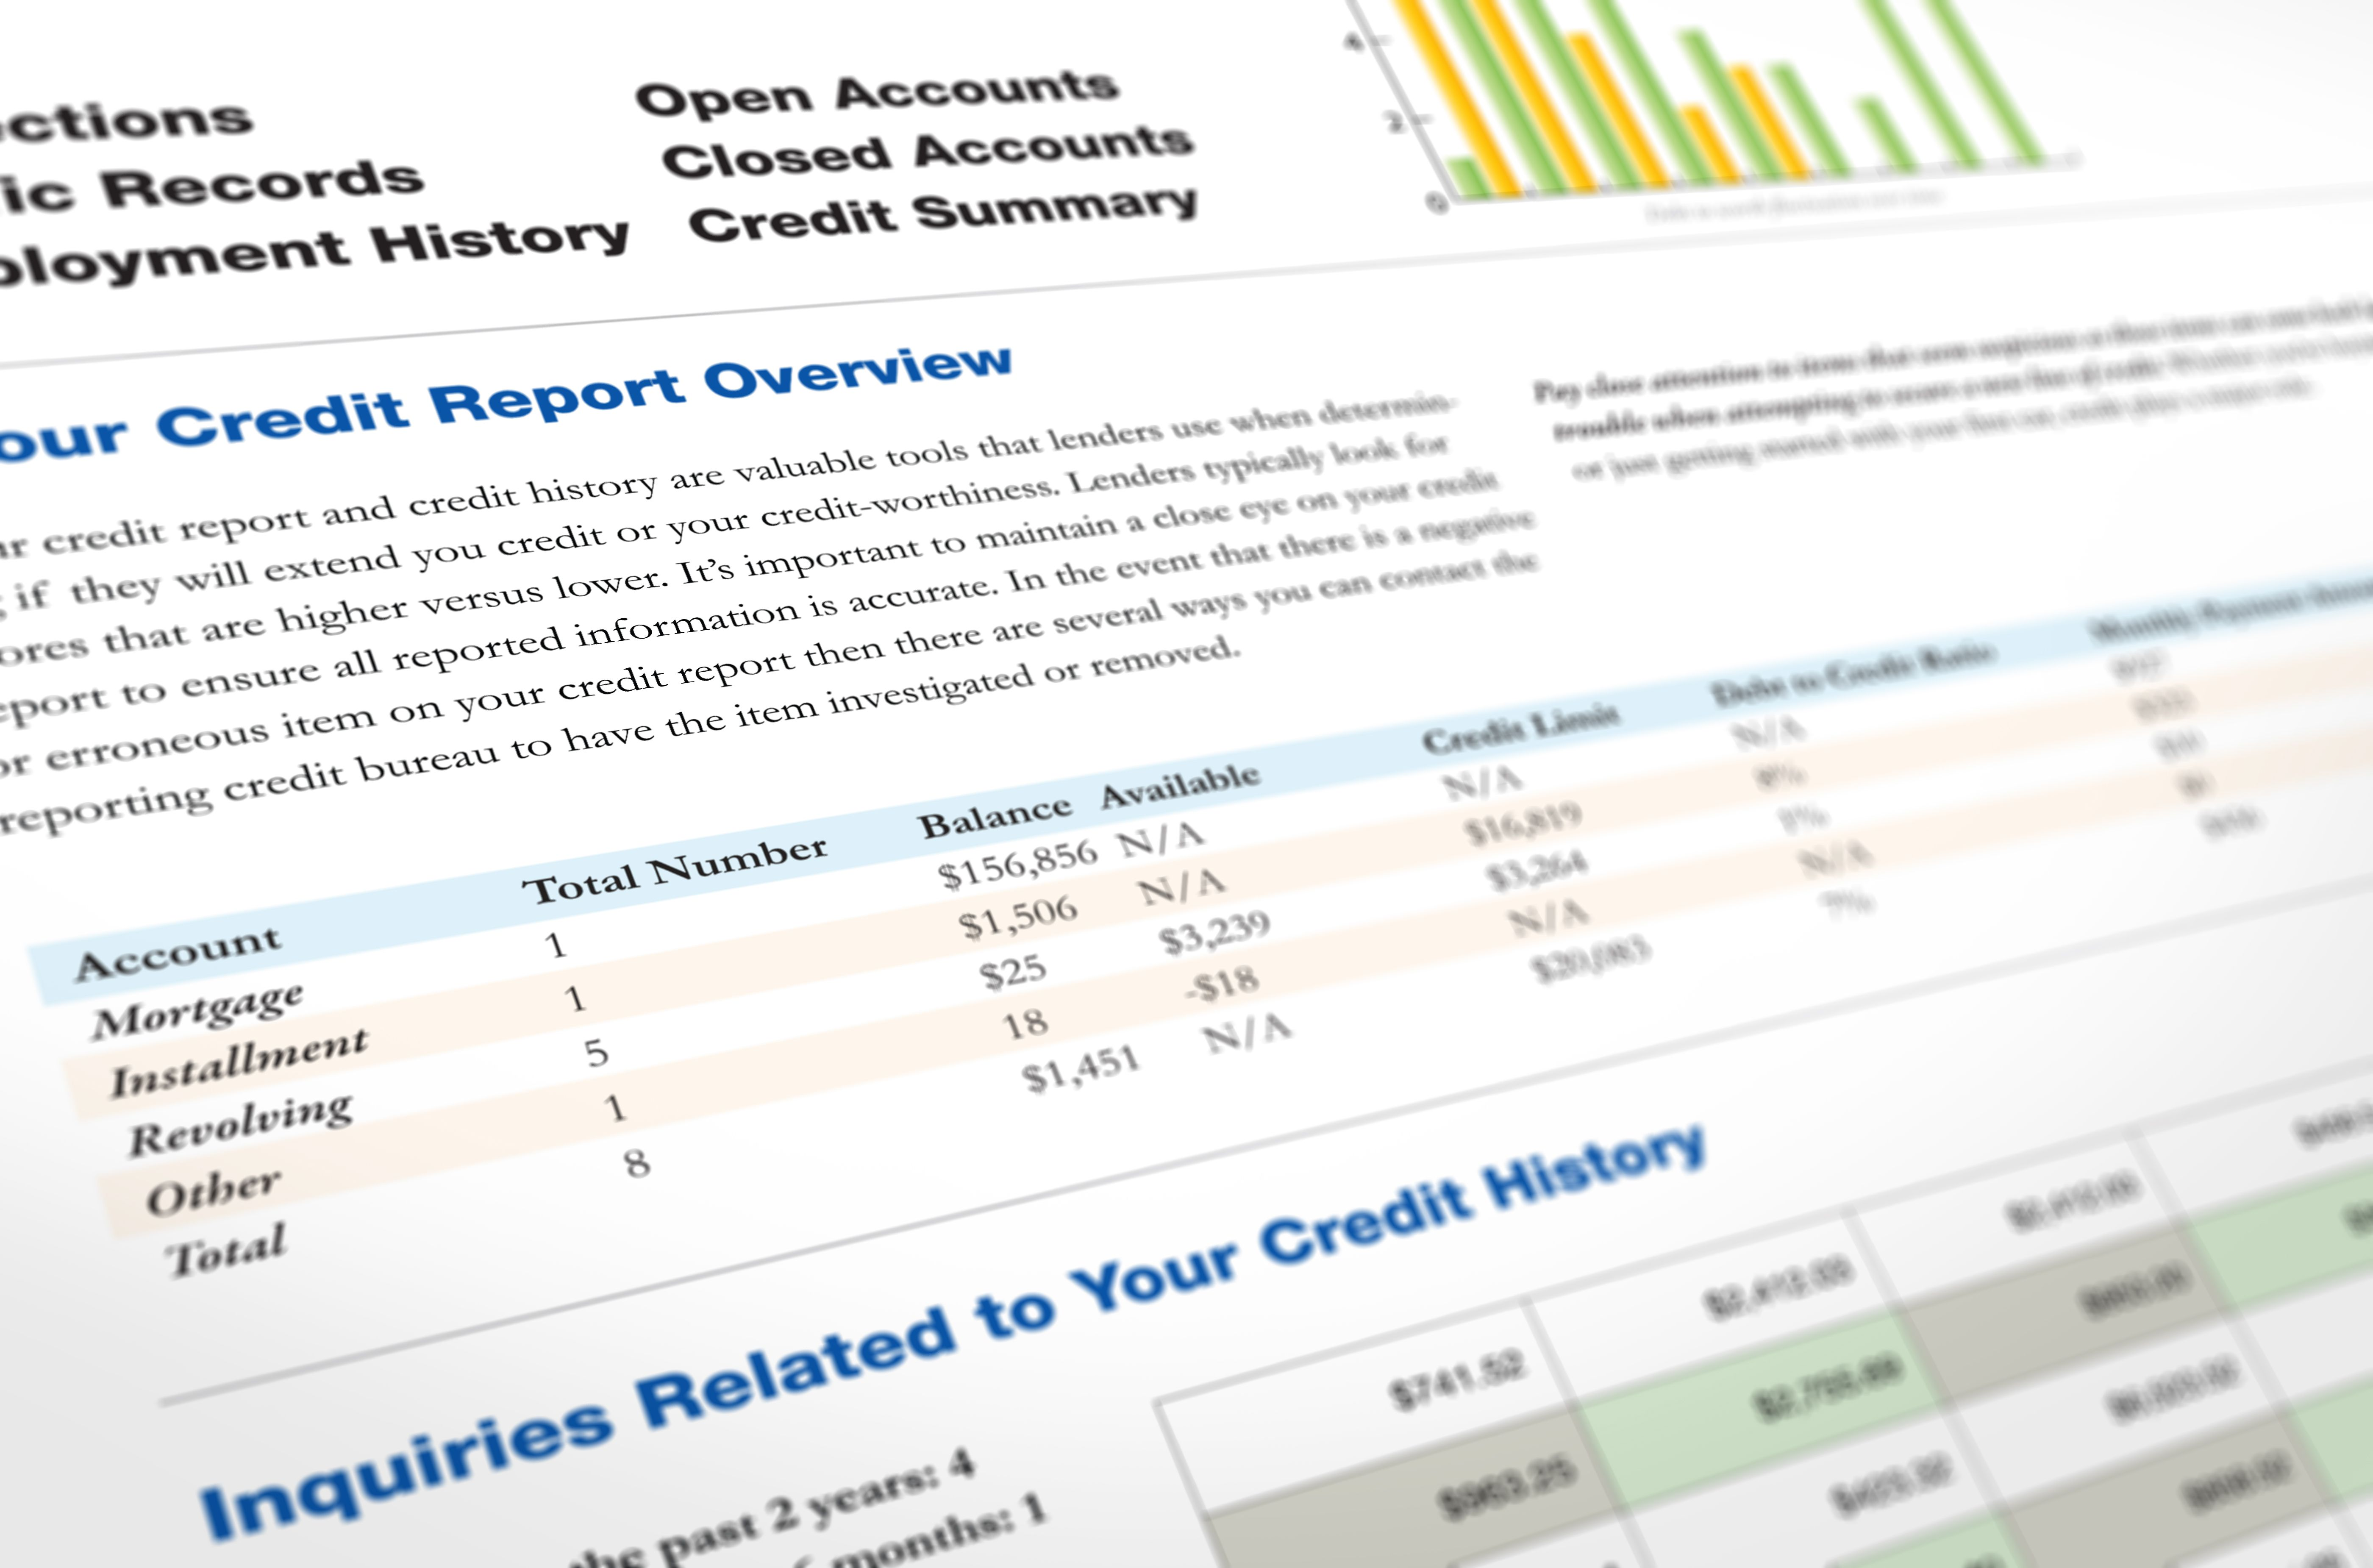 How Long Does Negative Information Stay on Your Credit Report?